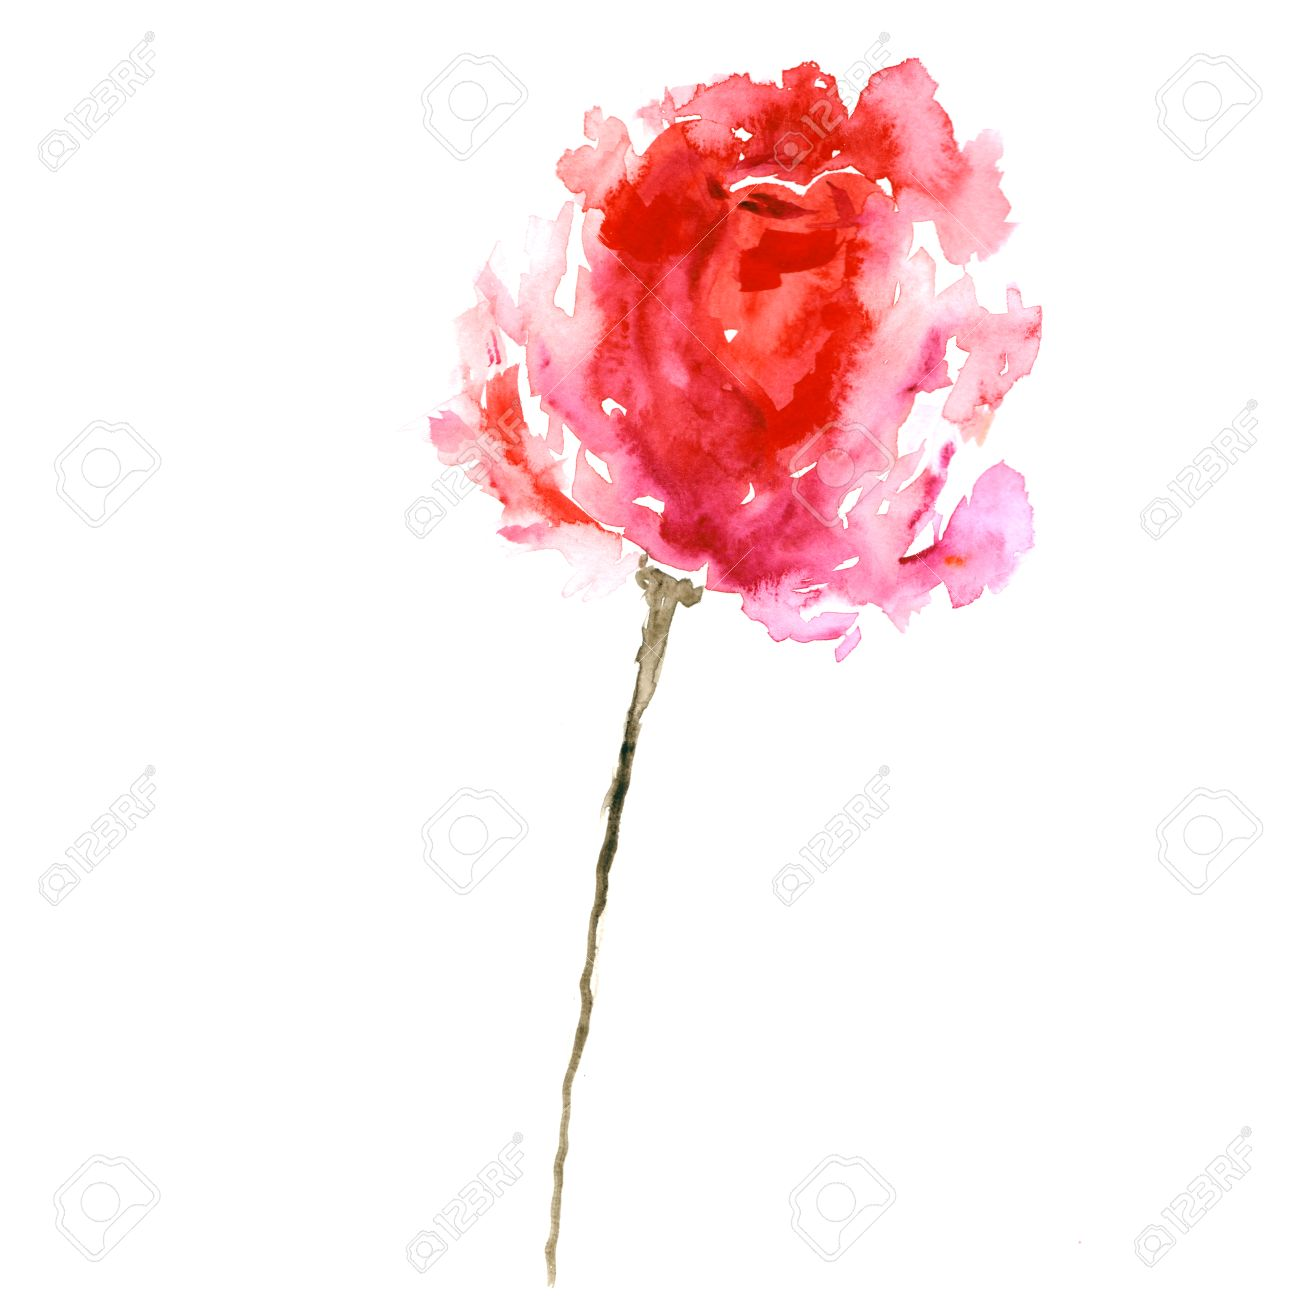 Red Flower Watercolor Rose Birthday Card Single Stock Photo